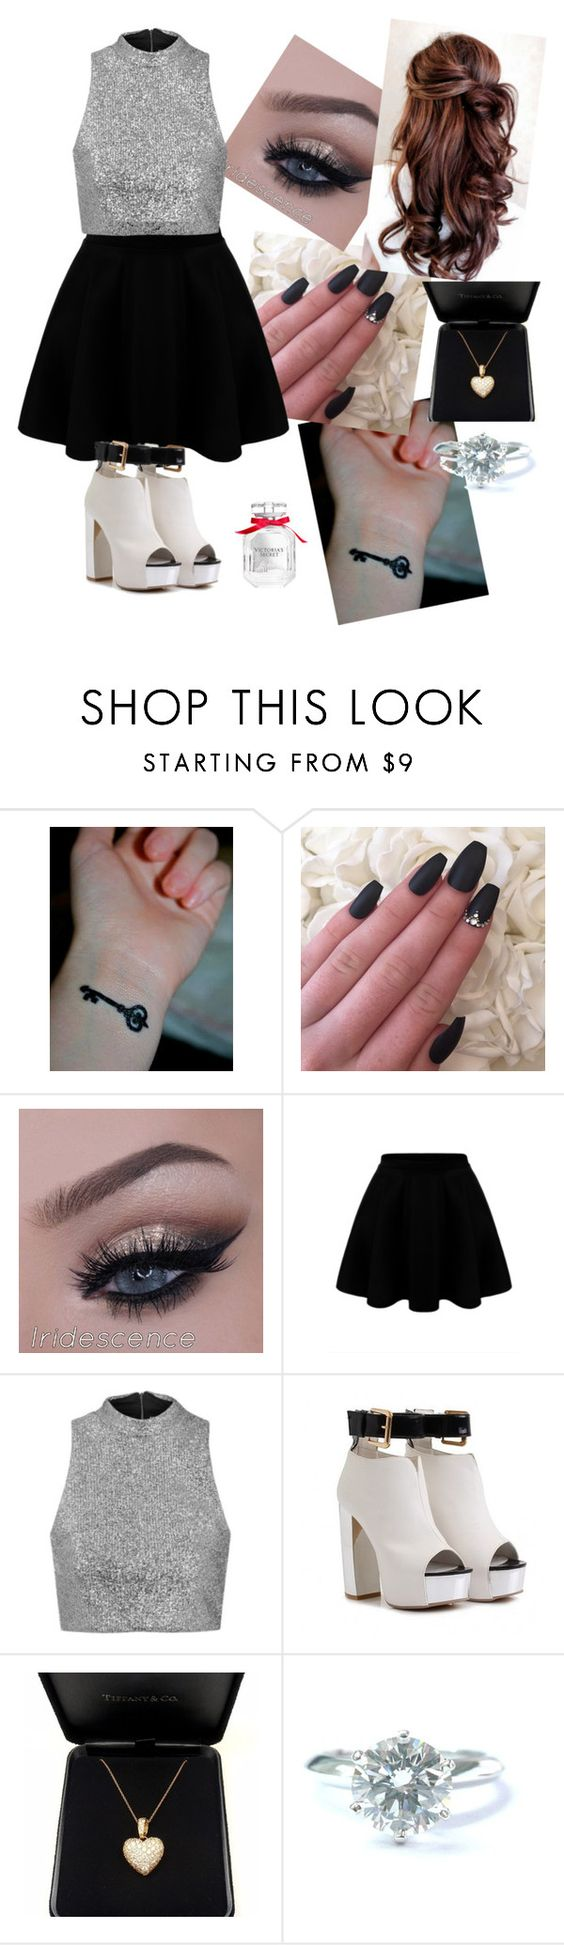 """Xmas Day"" by jenny-malik19 ❤ liked on Polyvore featuring Topshop, Tiffany & Co. and Victoria's Secret"